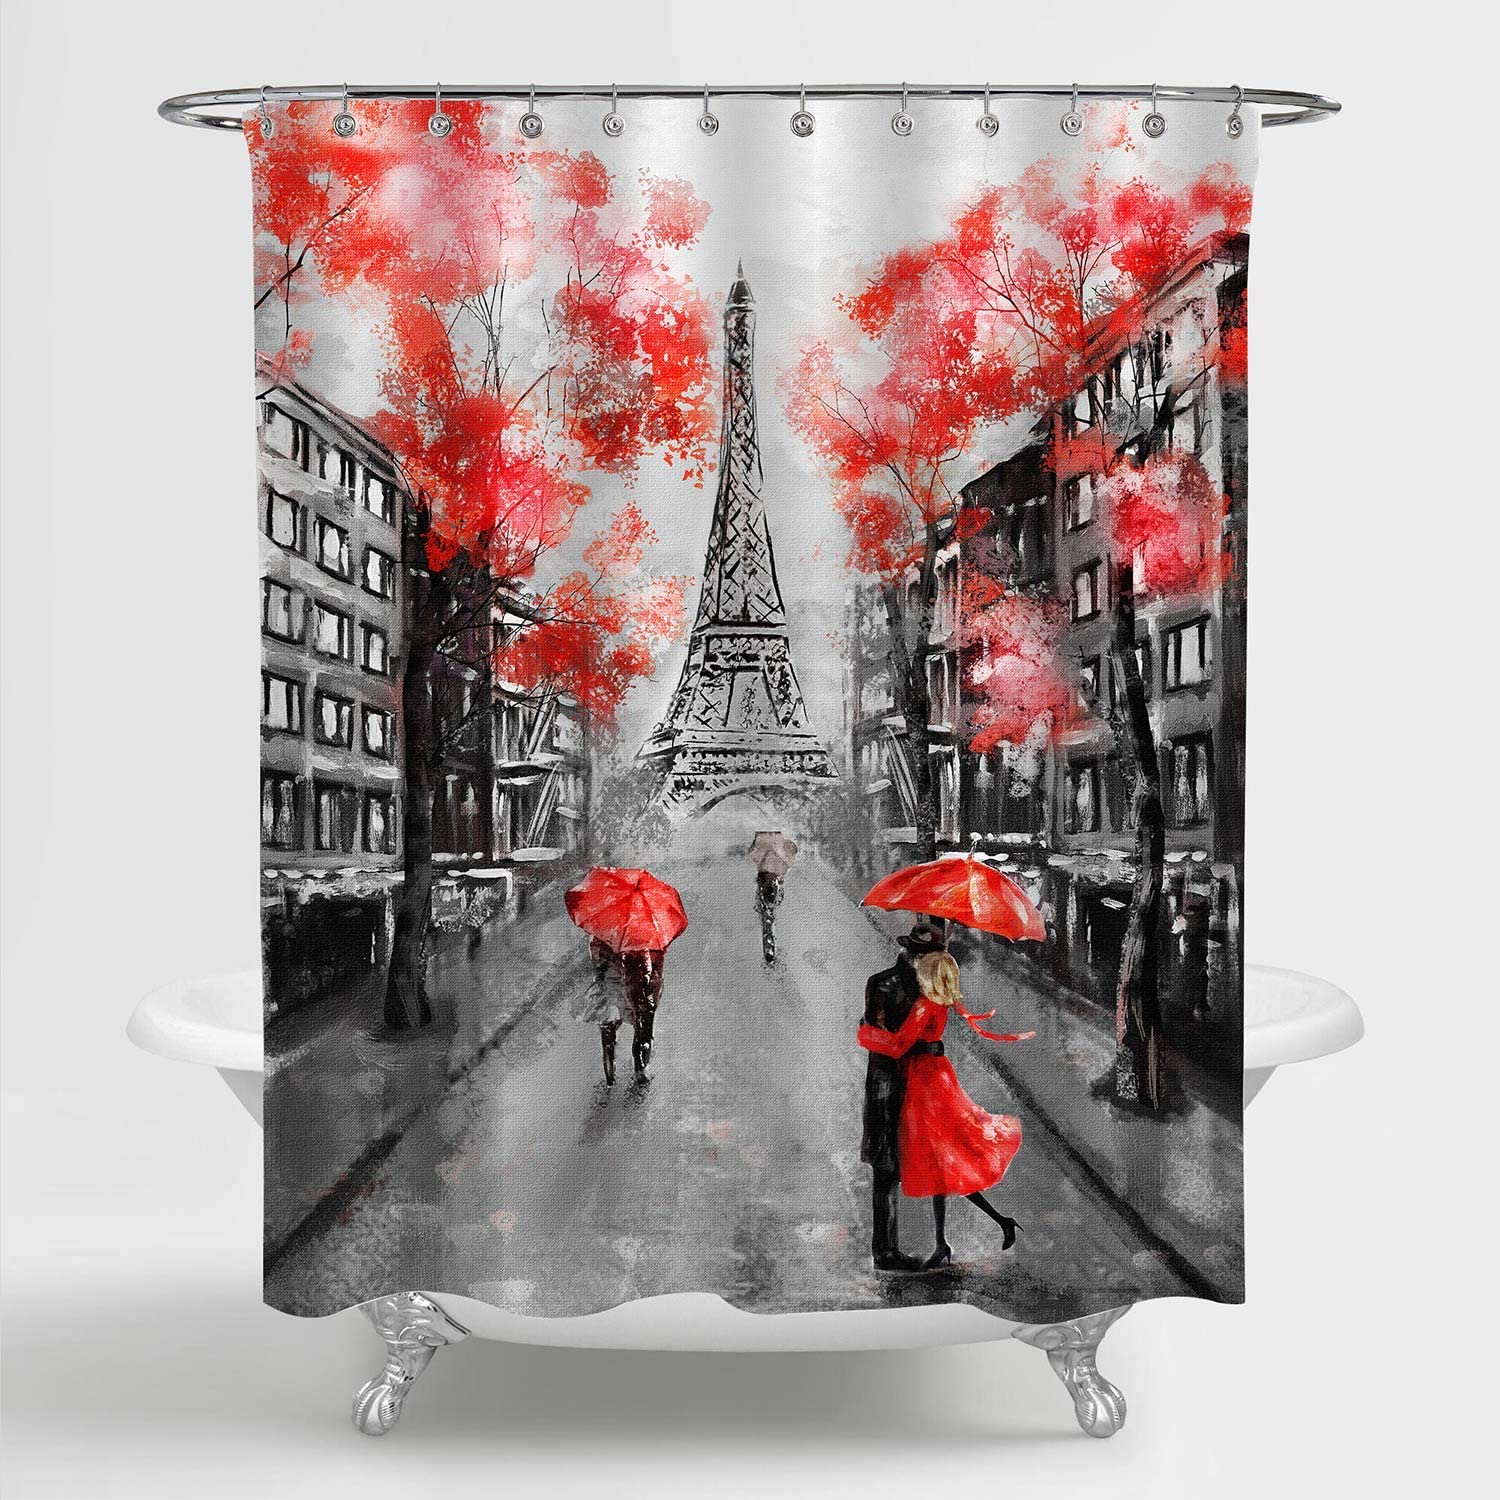 Amazon Com Mitovilla Paris Eiffel Tower Shower Curtain For Paris Bathroom Decor Vintage French Citysapce Oil Painting Bathroom Accessories Paris Gifts For Women And Teen Girls Red Black 72 W X 72 L